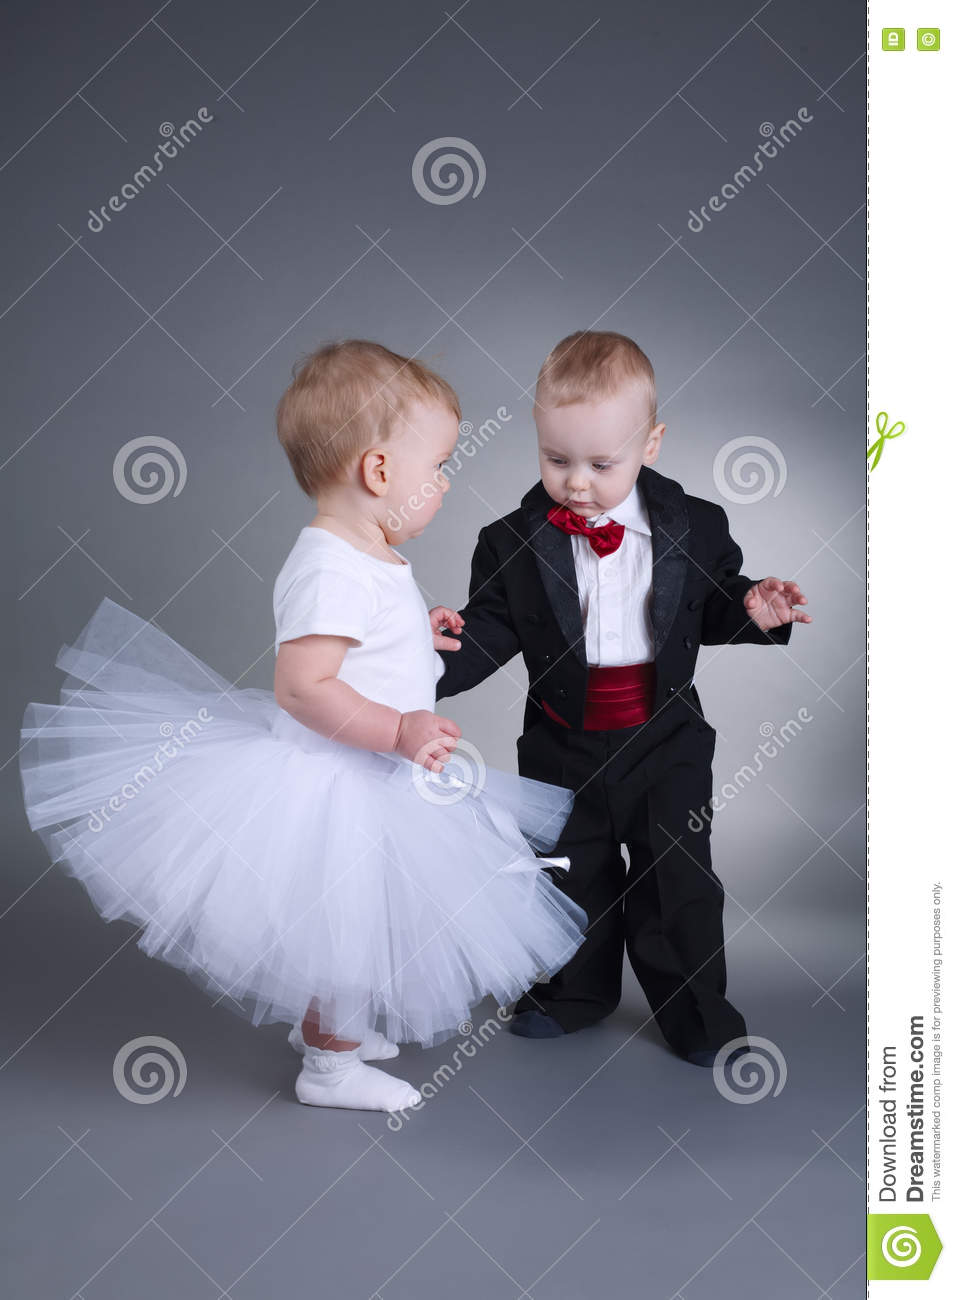 Cute Boy And Girl In Wedding Dress Stock Photo - Image of playing ...